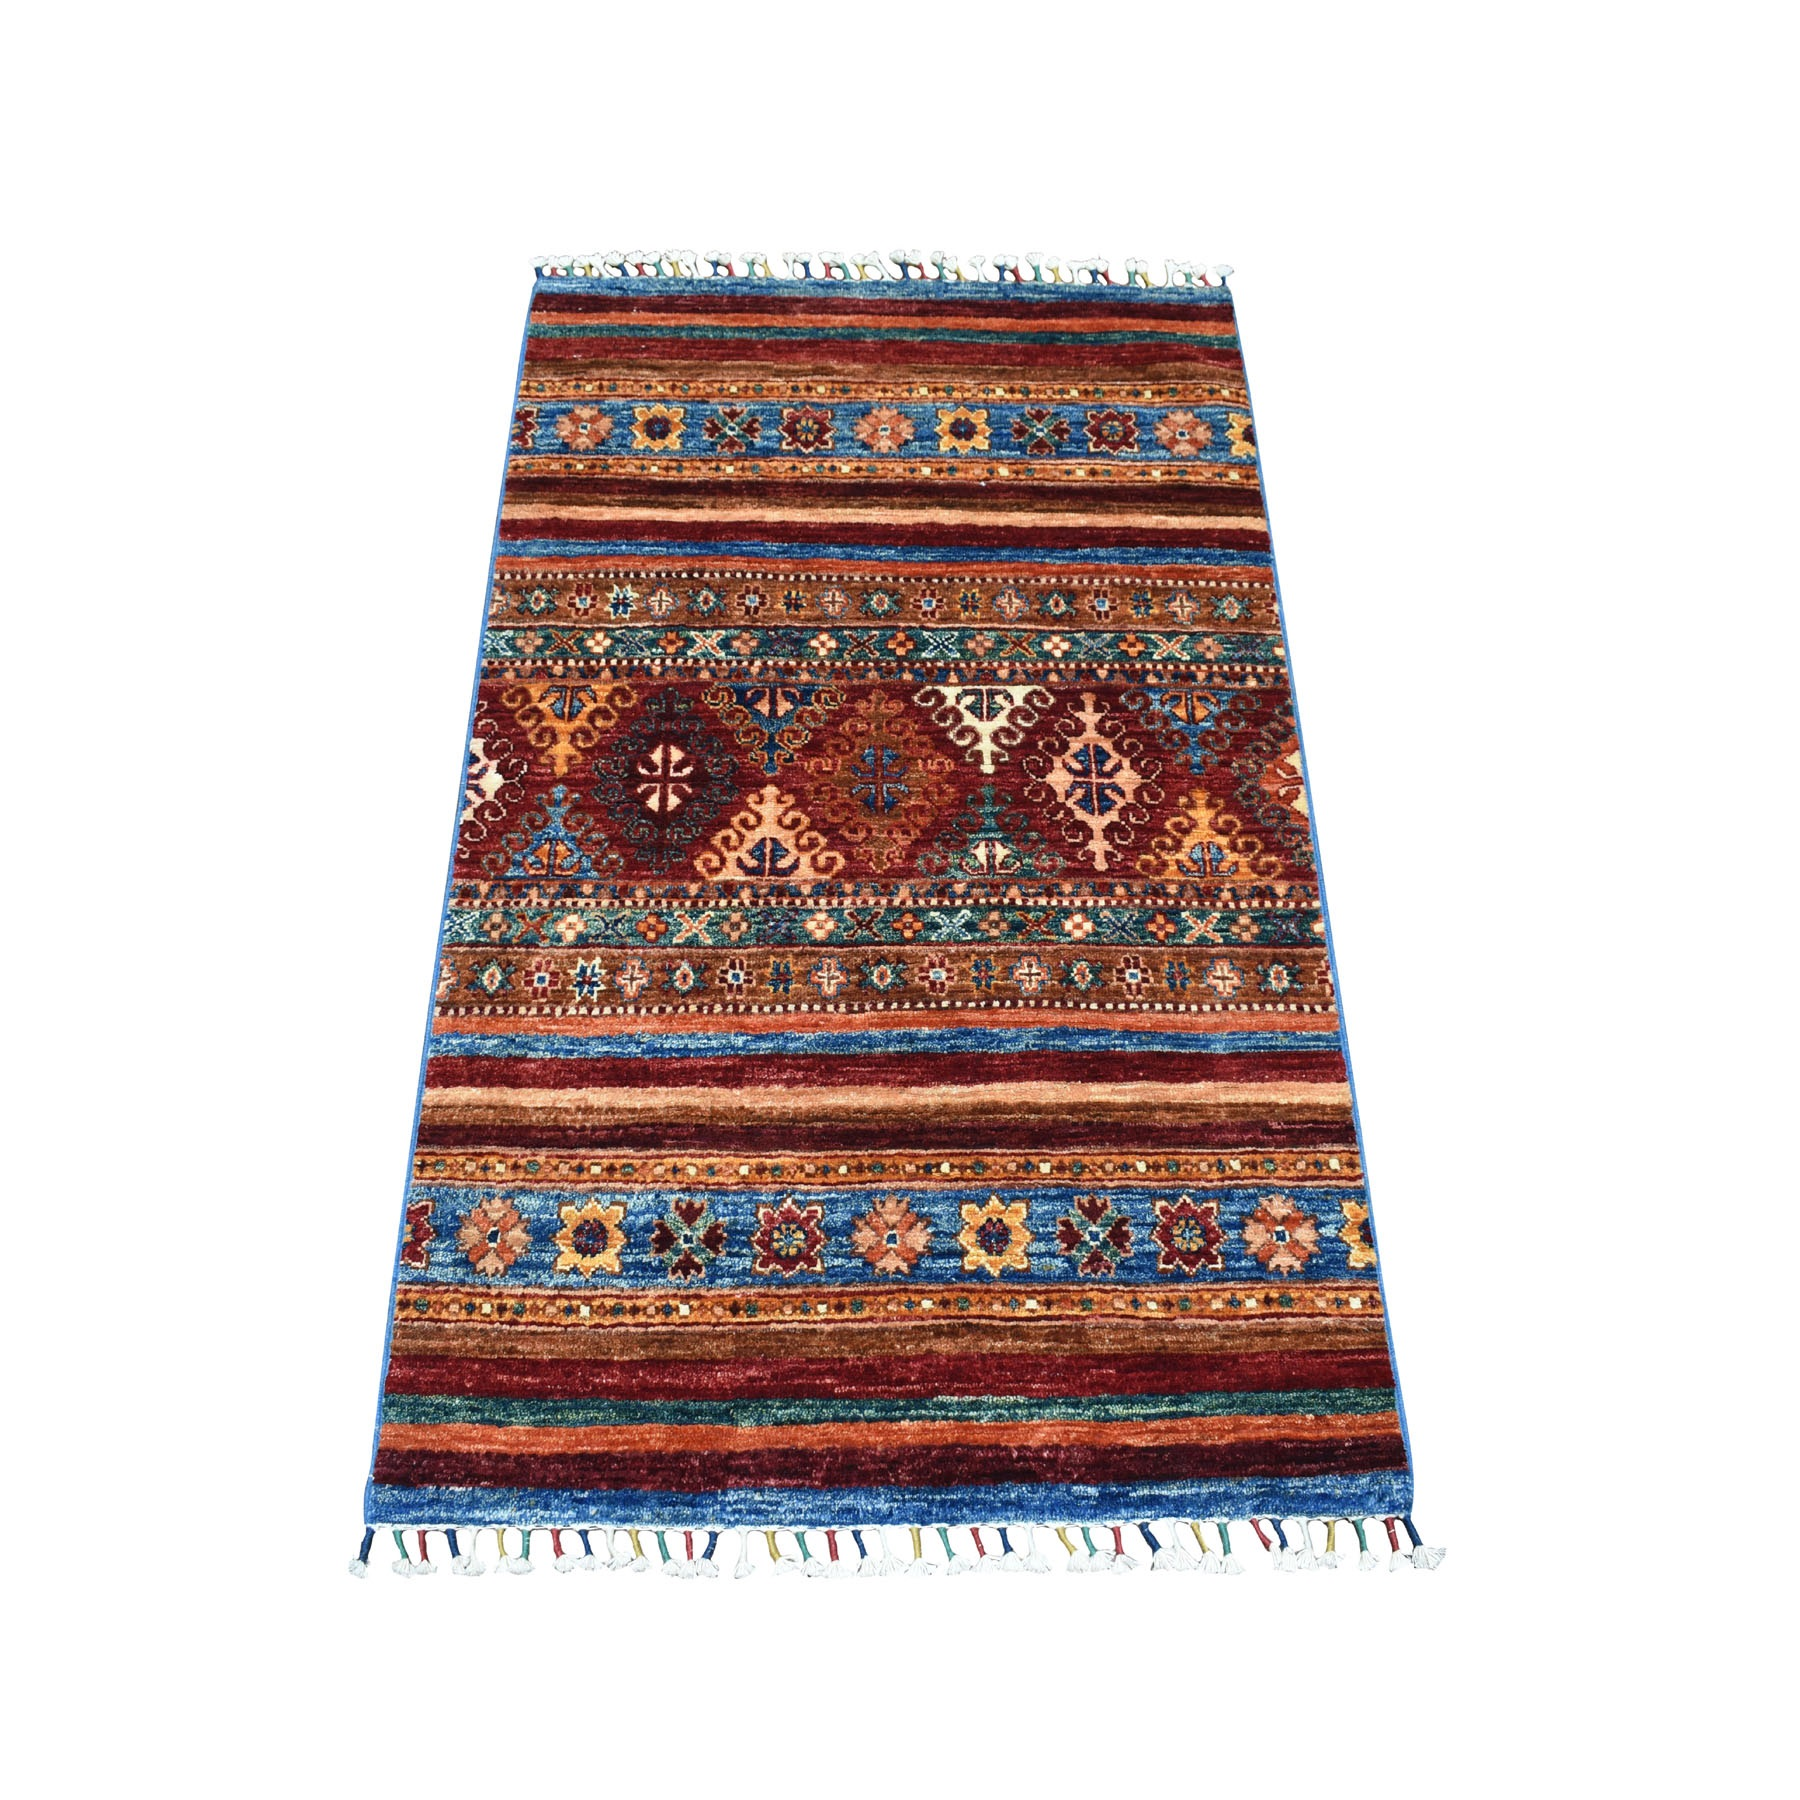 "2'8""x4' Khorjin Design Colorful Super Kazak Pure Wool Hand Woven Oriental Rug"